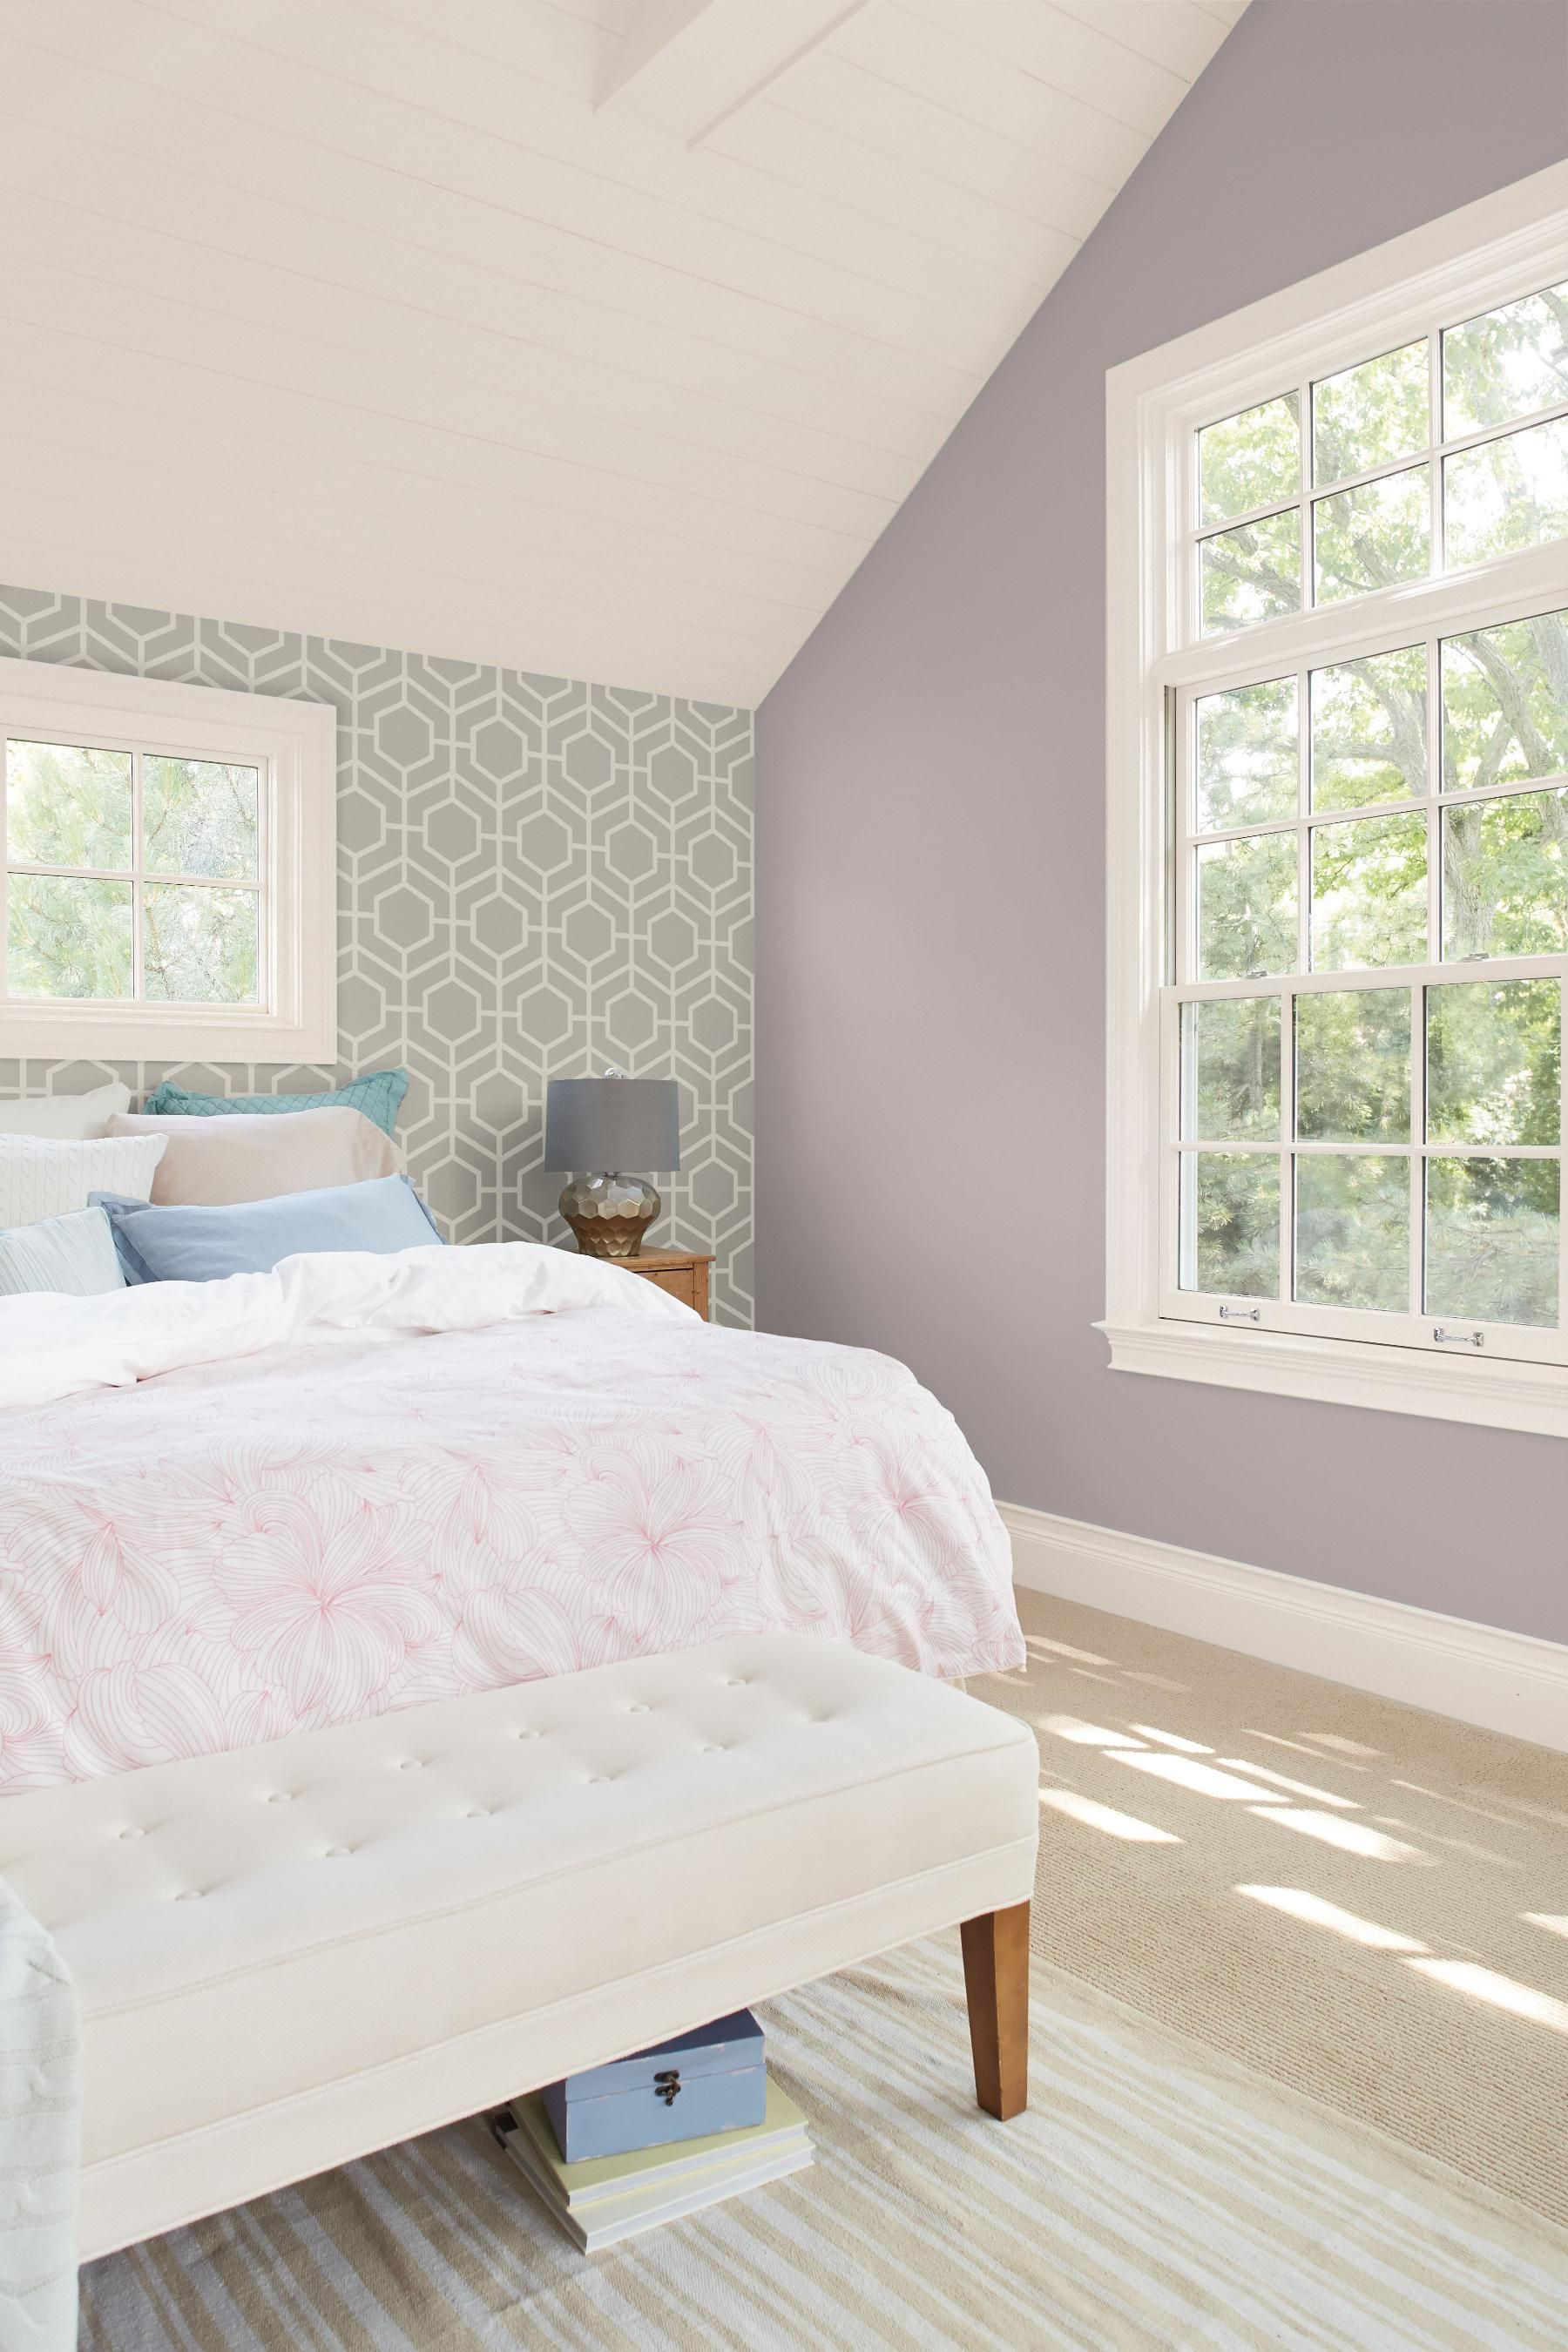 Check Out The Room I Ve Designed With The Dutch Boy Color Visualizer Farmhouse Paint Colors Interior Dutch Boy Paint Colors Playroom Paint Colors